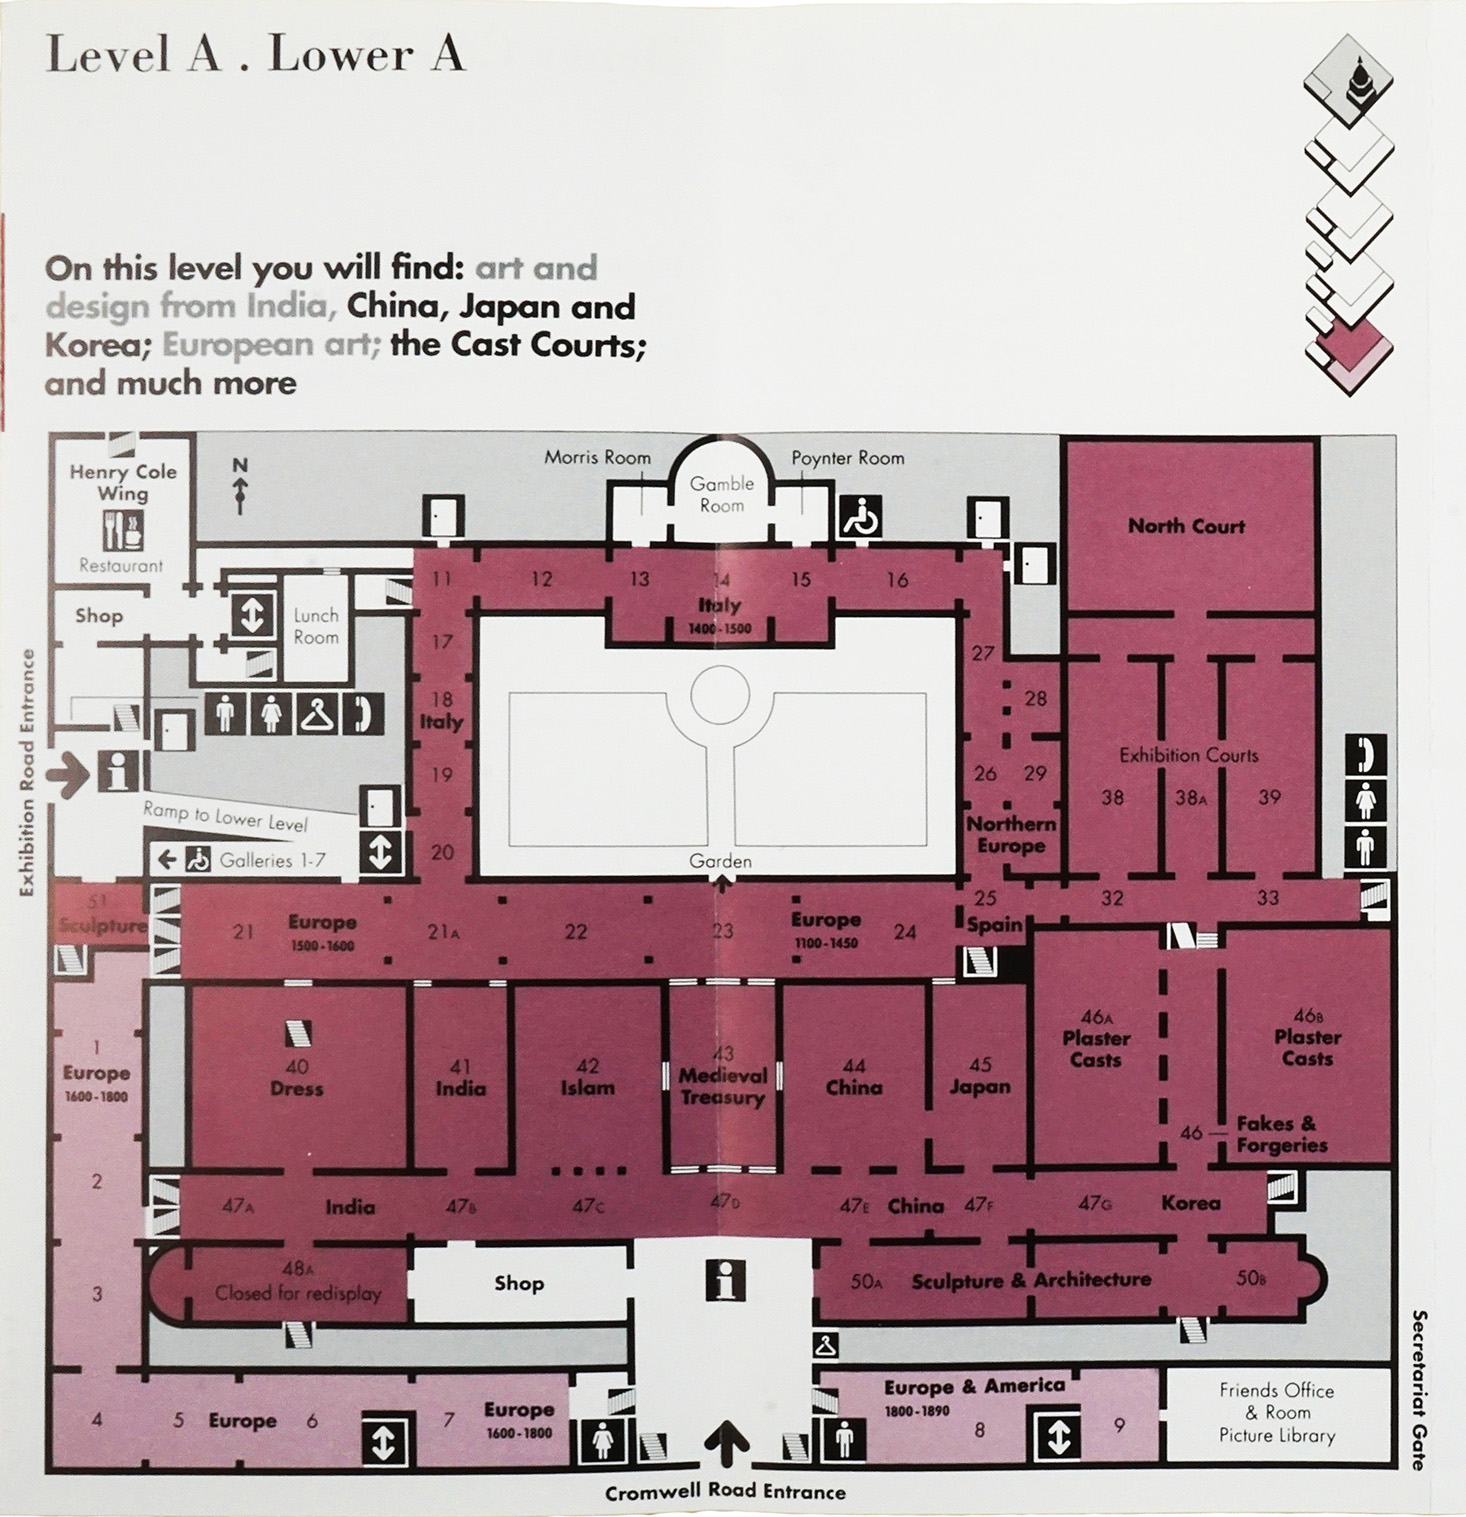 best laid plans mapping the v a by andrew mcilwraith victoria this plan was part of a guide to the museum produced by the design group pentagram in the 1990s and uses few colours again to show different floor levels